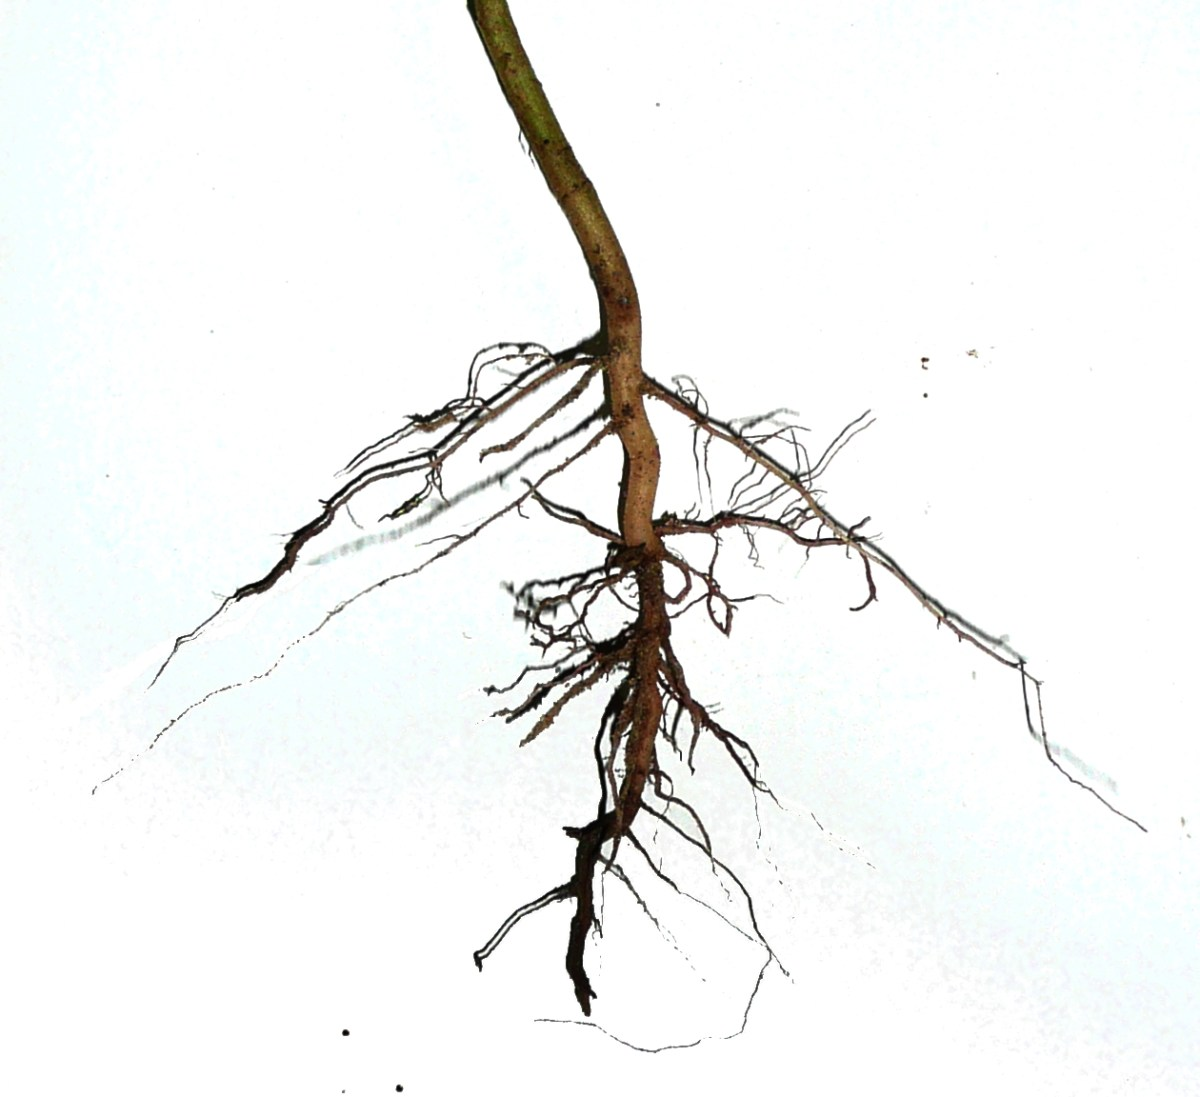 dicotyledoneae_asteraceae_herb_-_root_system_primary_root_becomes_tap_root_and_lateral_roots